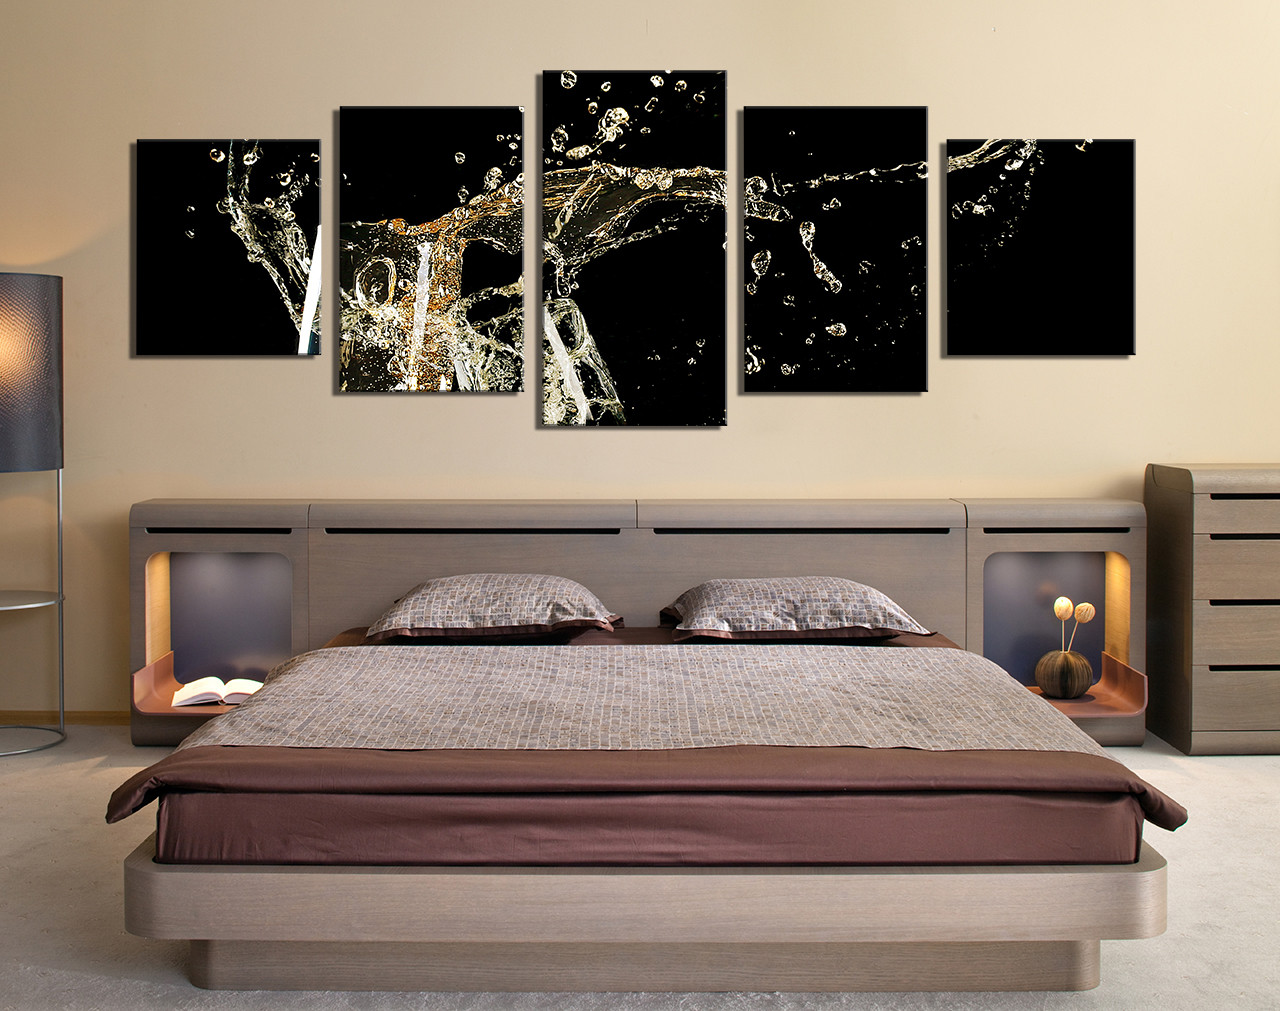 5 Piece Wall Art 5 piece wall decor, panoramic huge canvas print, champagne multi